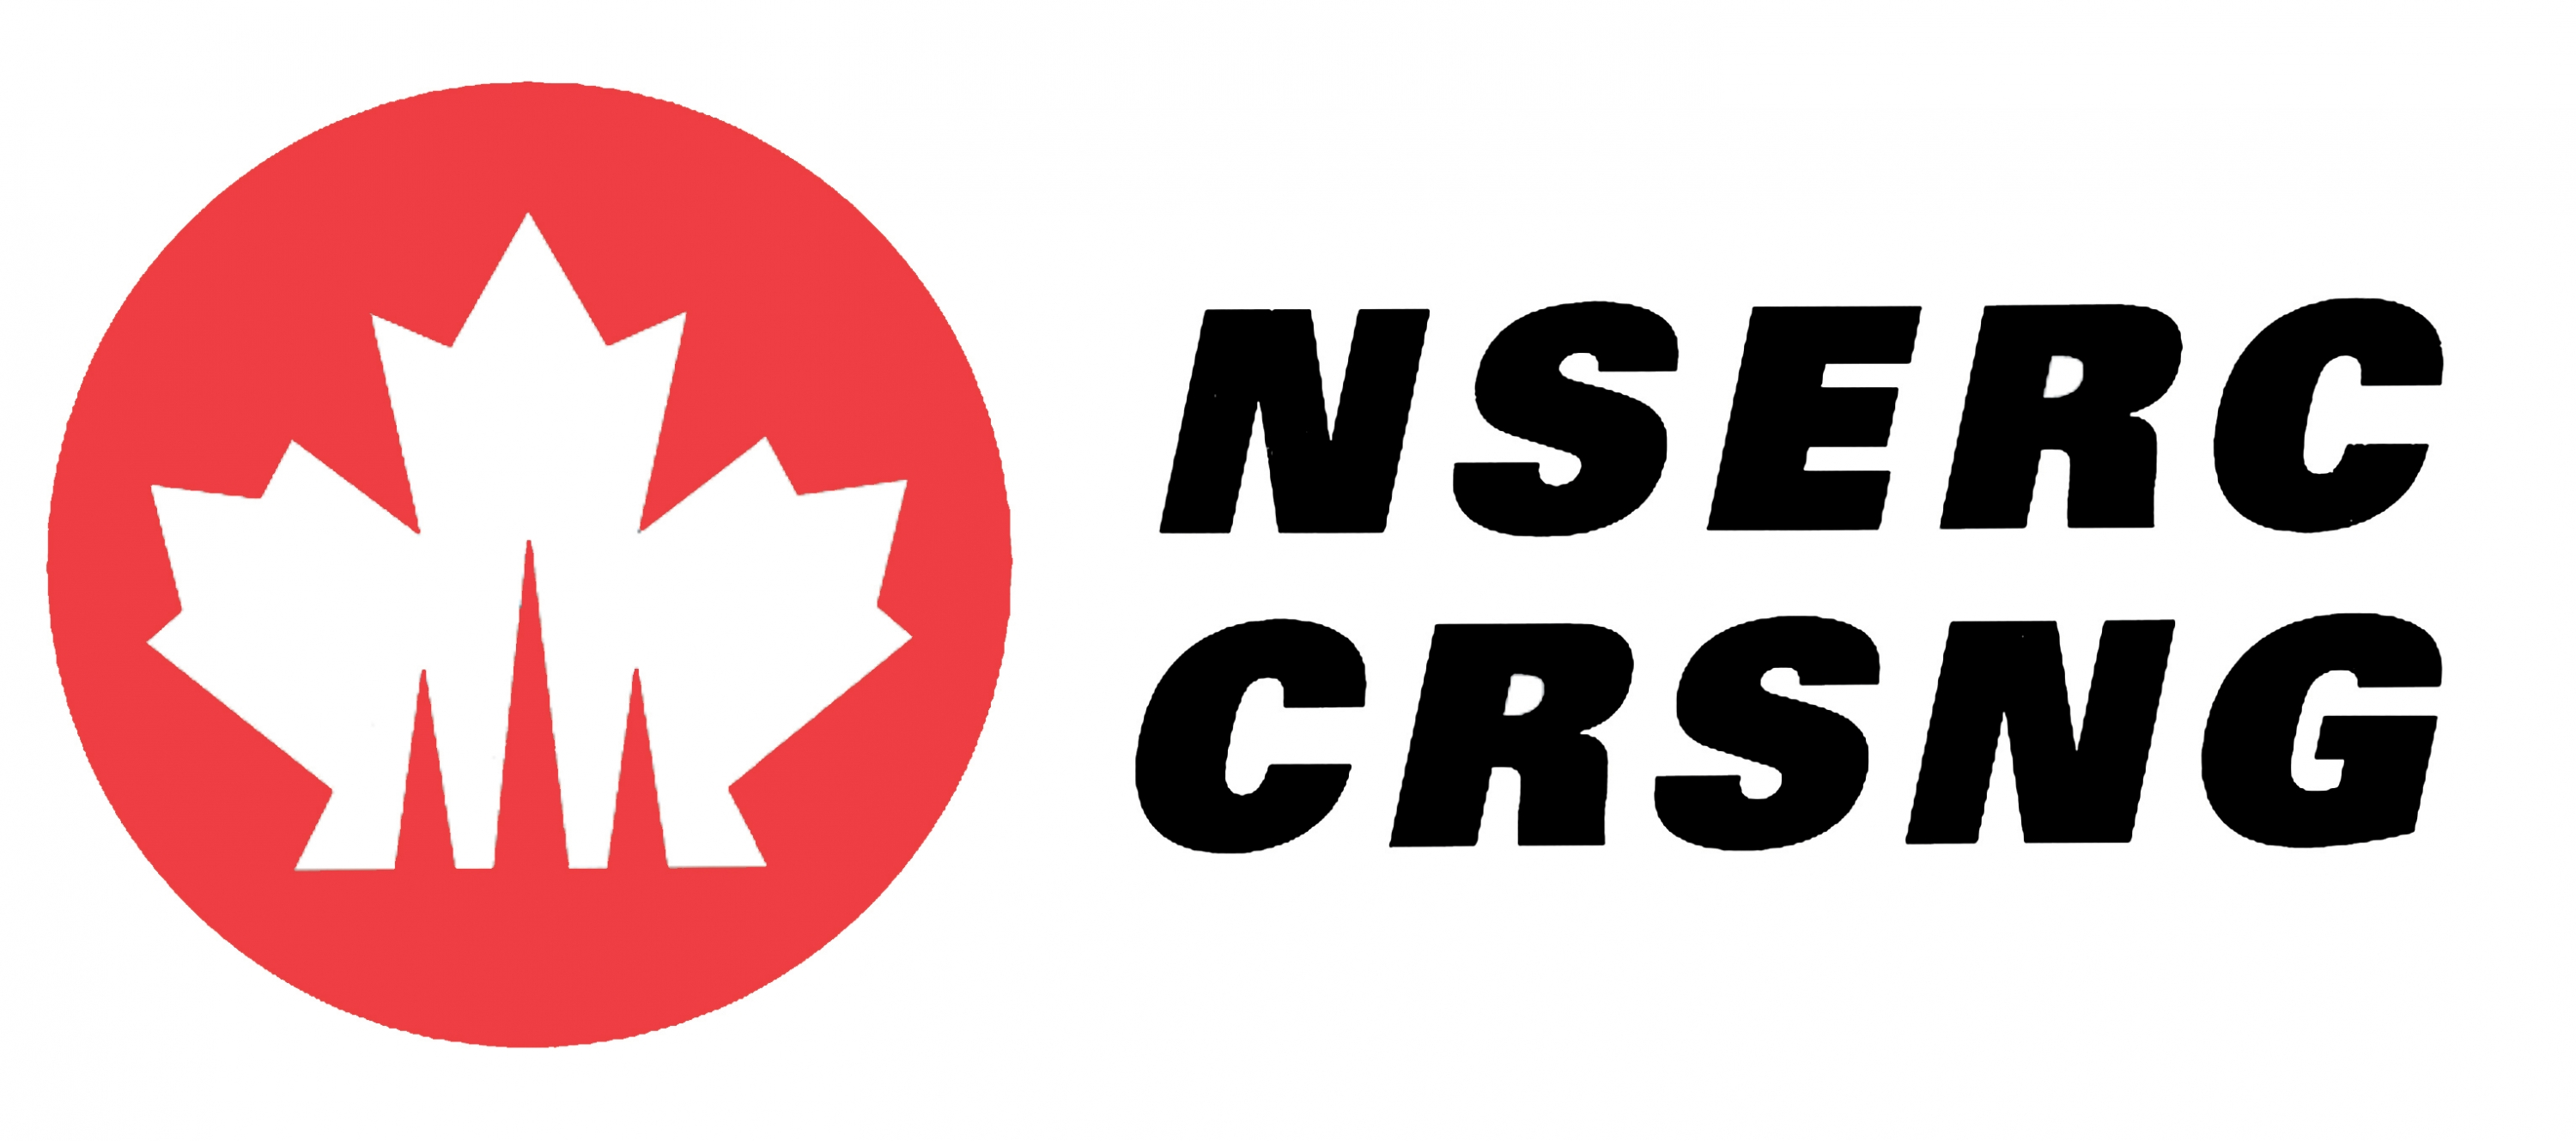 https://uwaterloo.ca/science/sites/ca.science/files/uploads/images/nserc_logo_color.jpg